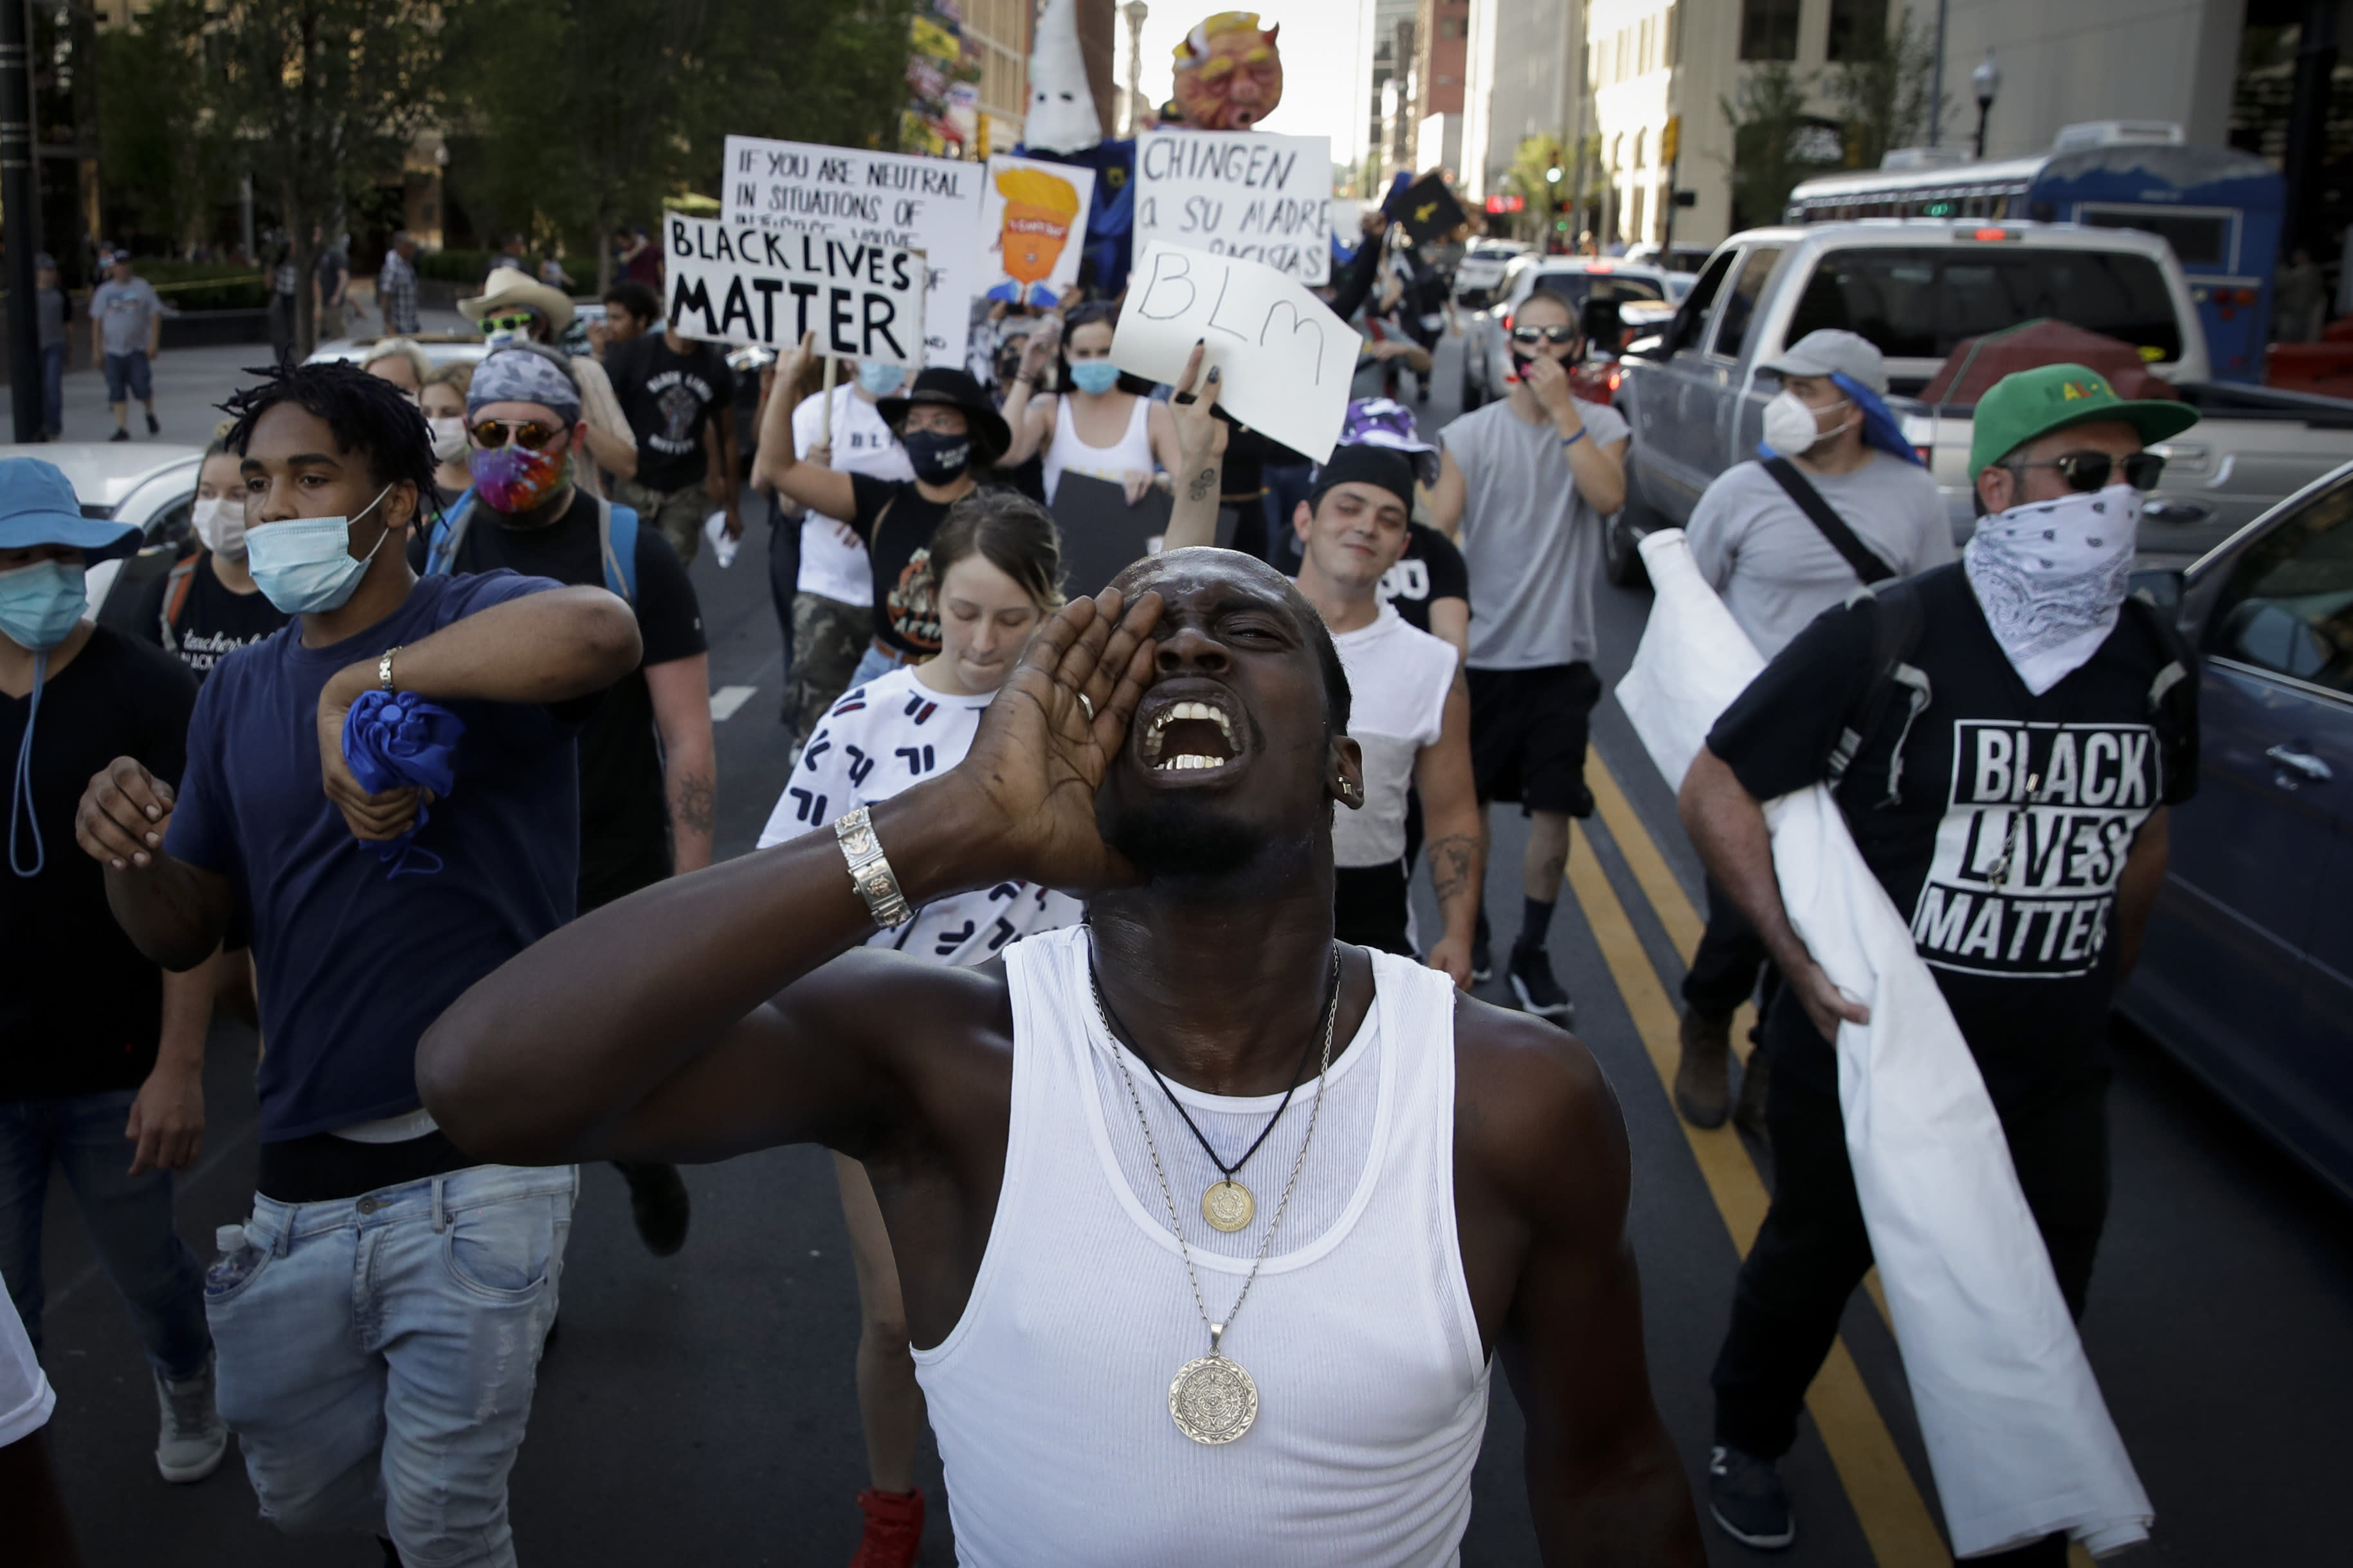 FILE - In this June 20, 2020, file photo, demonstrators march outside the BOK Center where President Trump will hold a campaign rally in Tulsa, Okla. (AP Photo/Charlie Riedel, File)